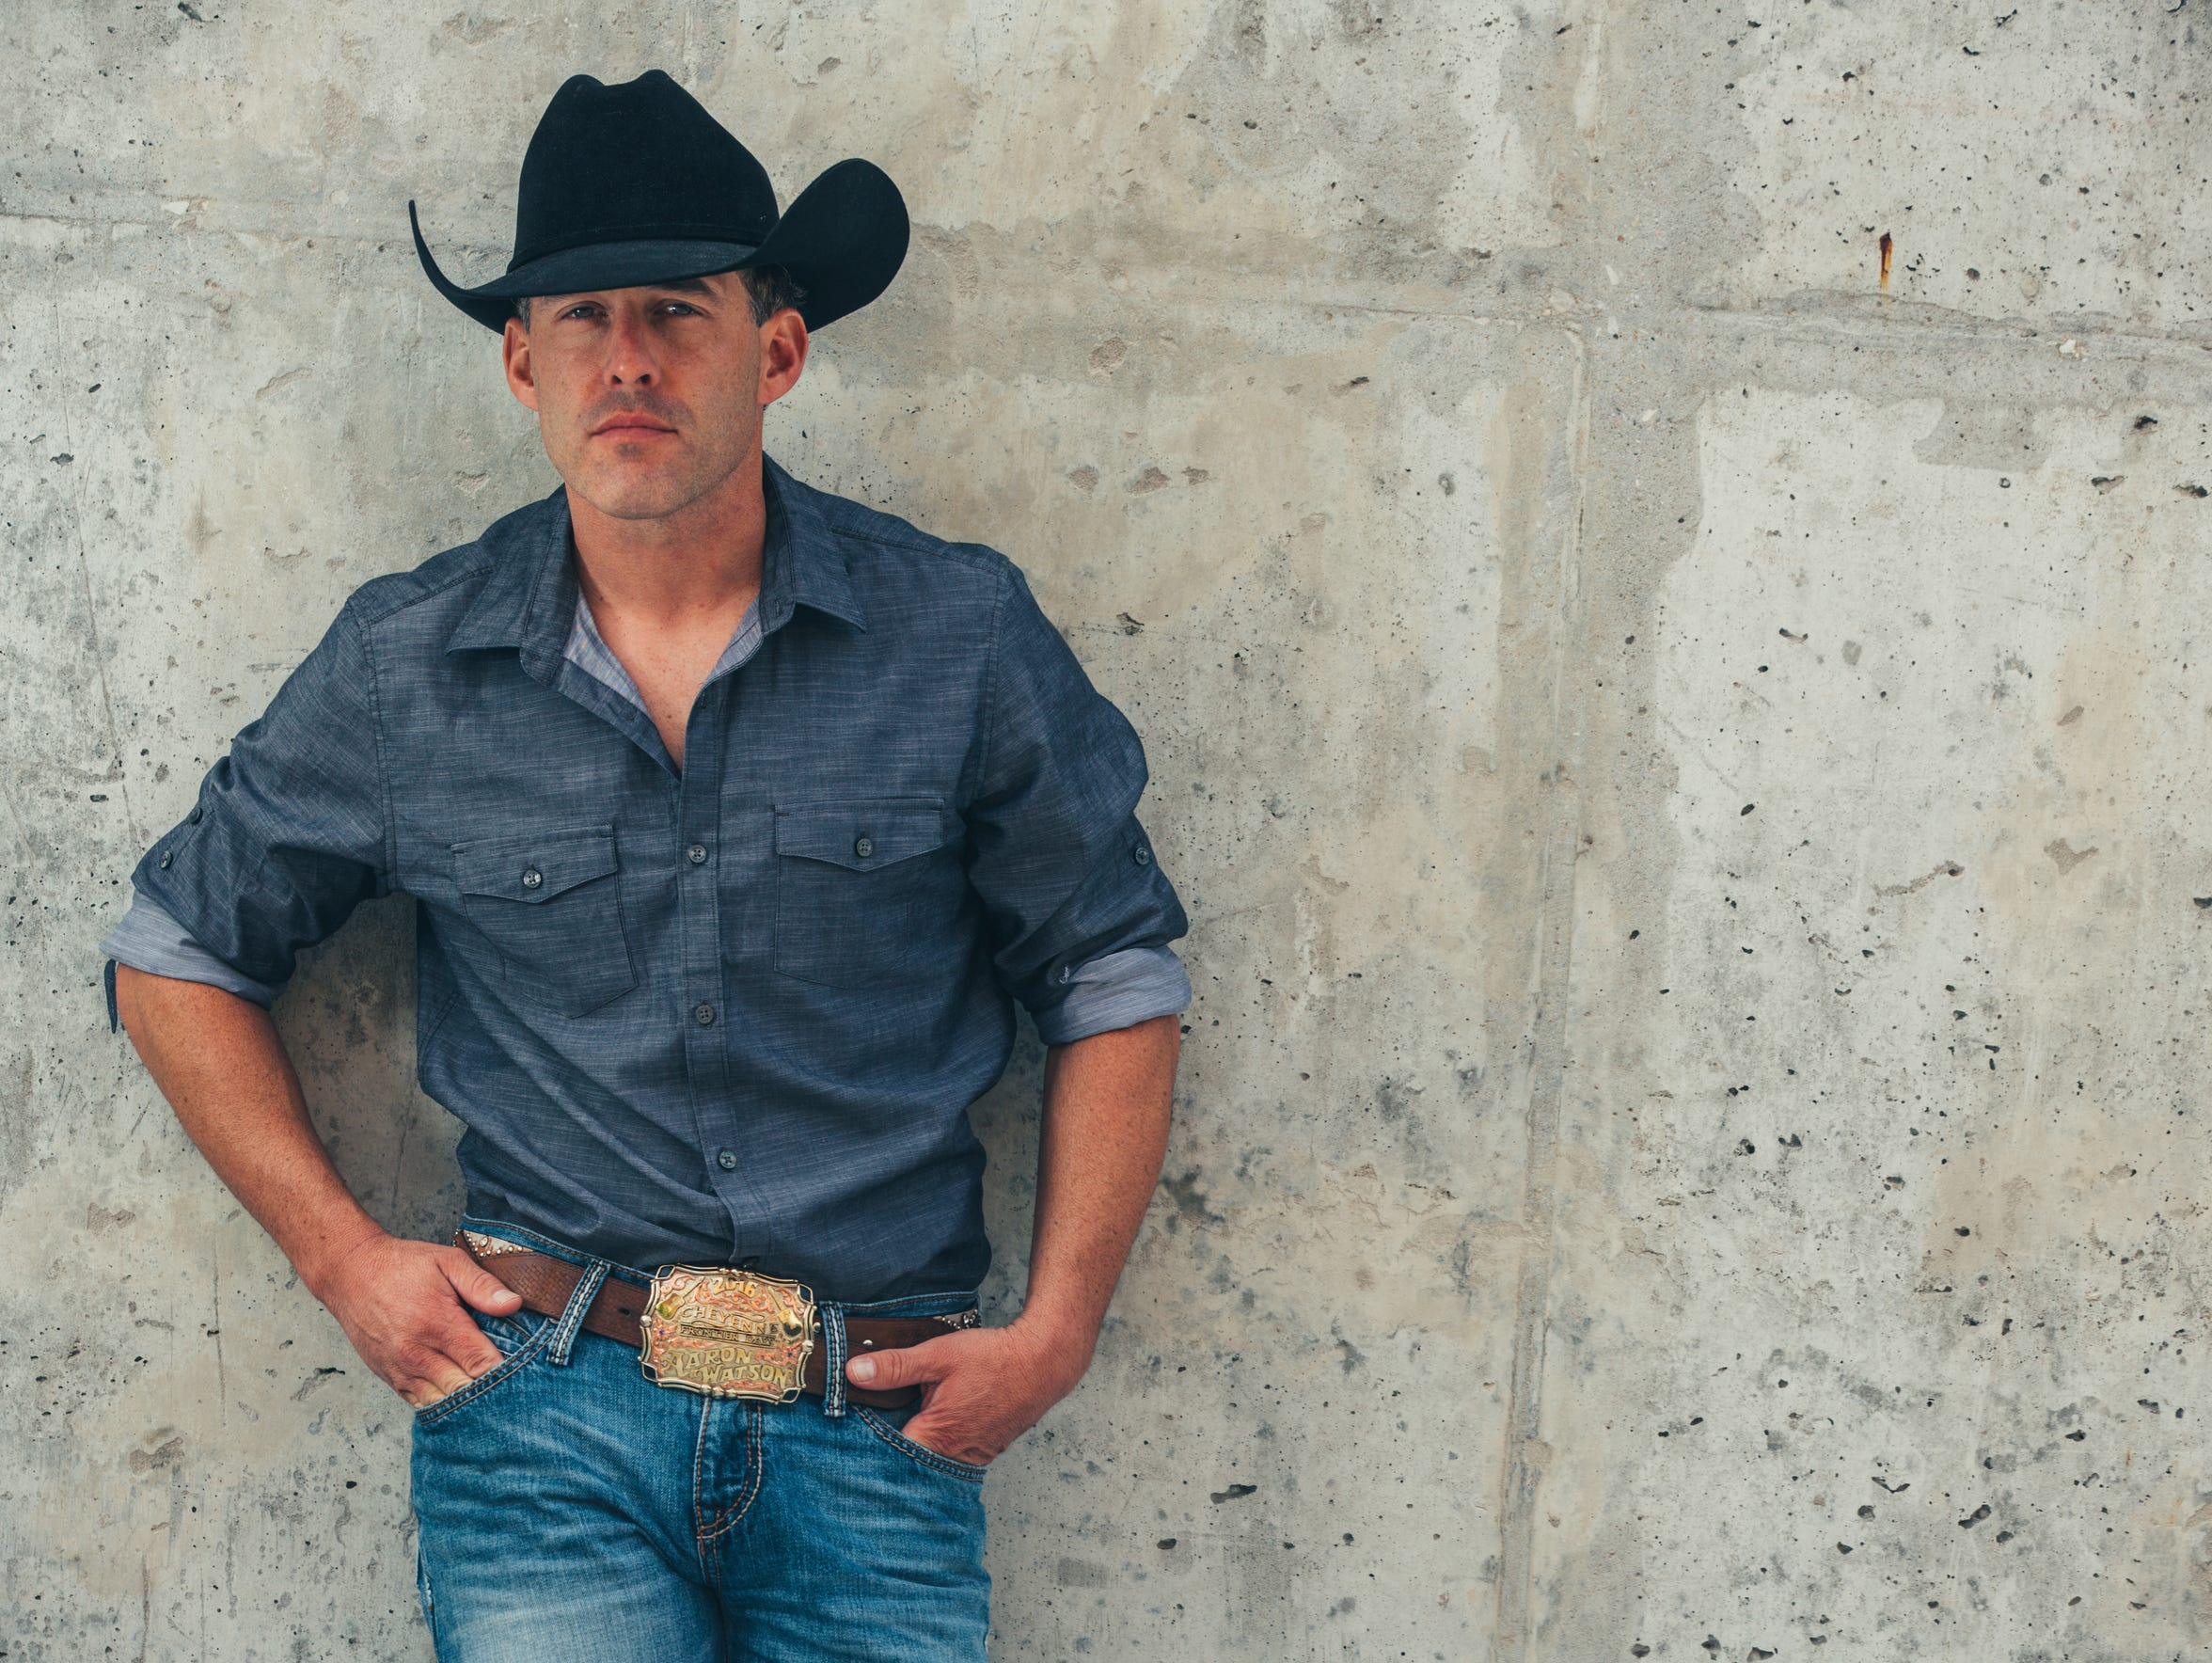 After long road trips, country singer Aaron Watson